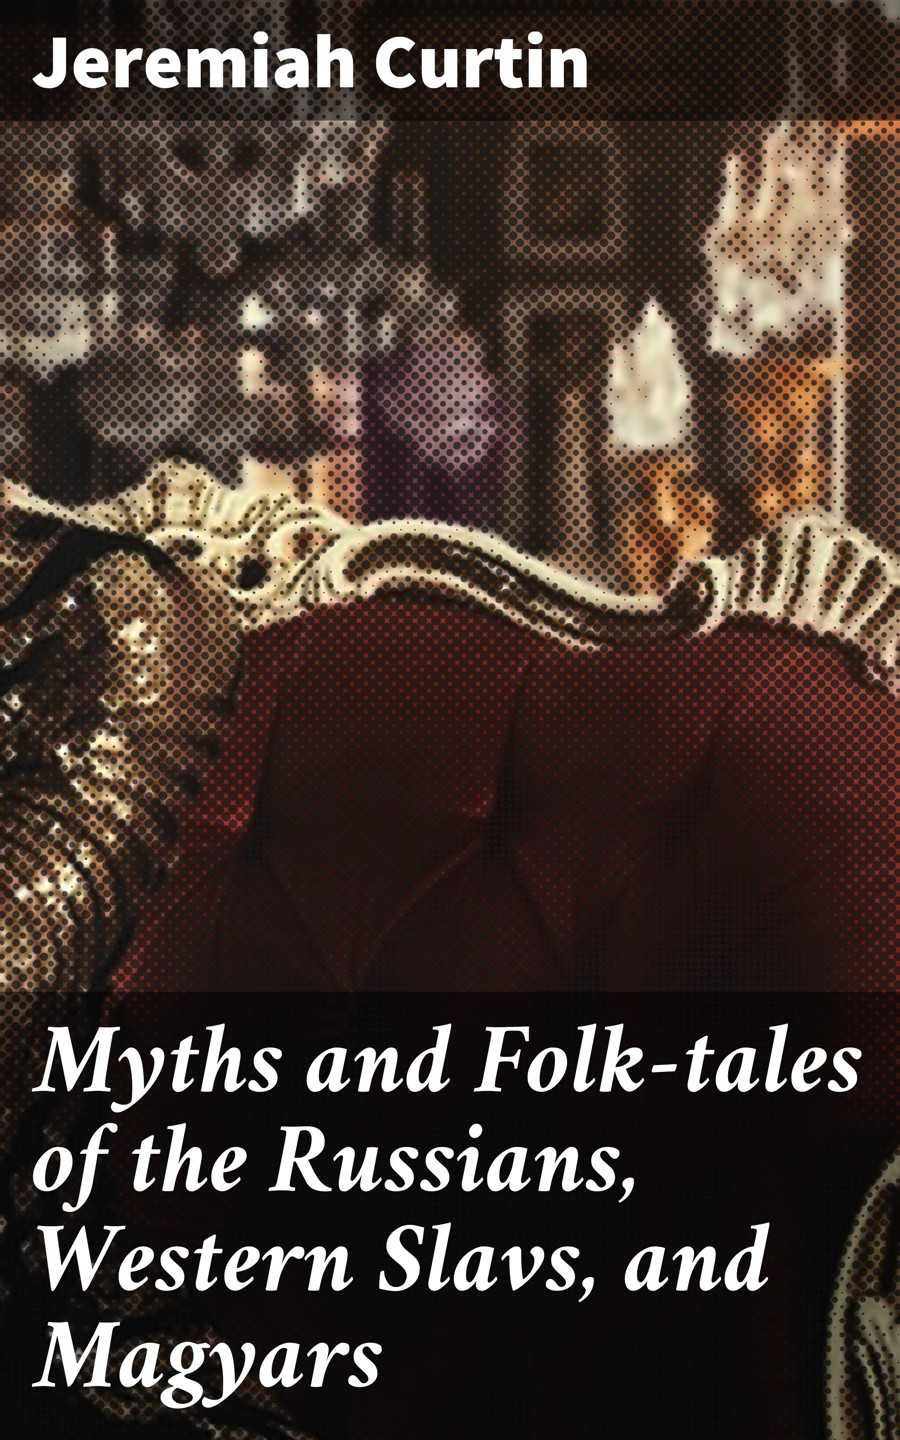 лучшая цена Jeremiah Curtin Myths and Folk-tales of the Russians, Western Slavs, and Magyars